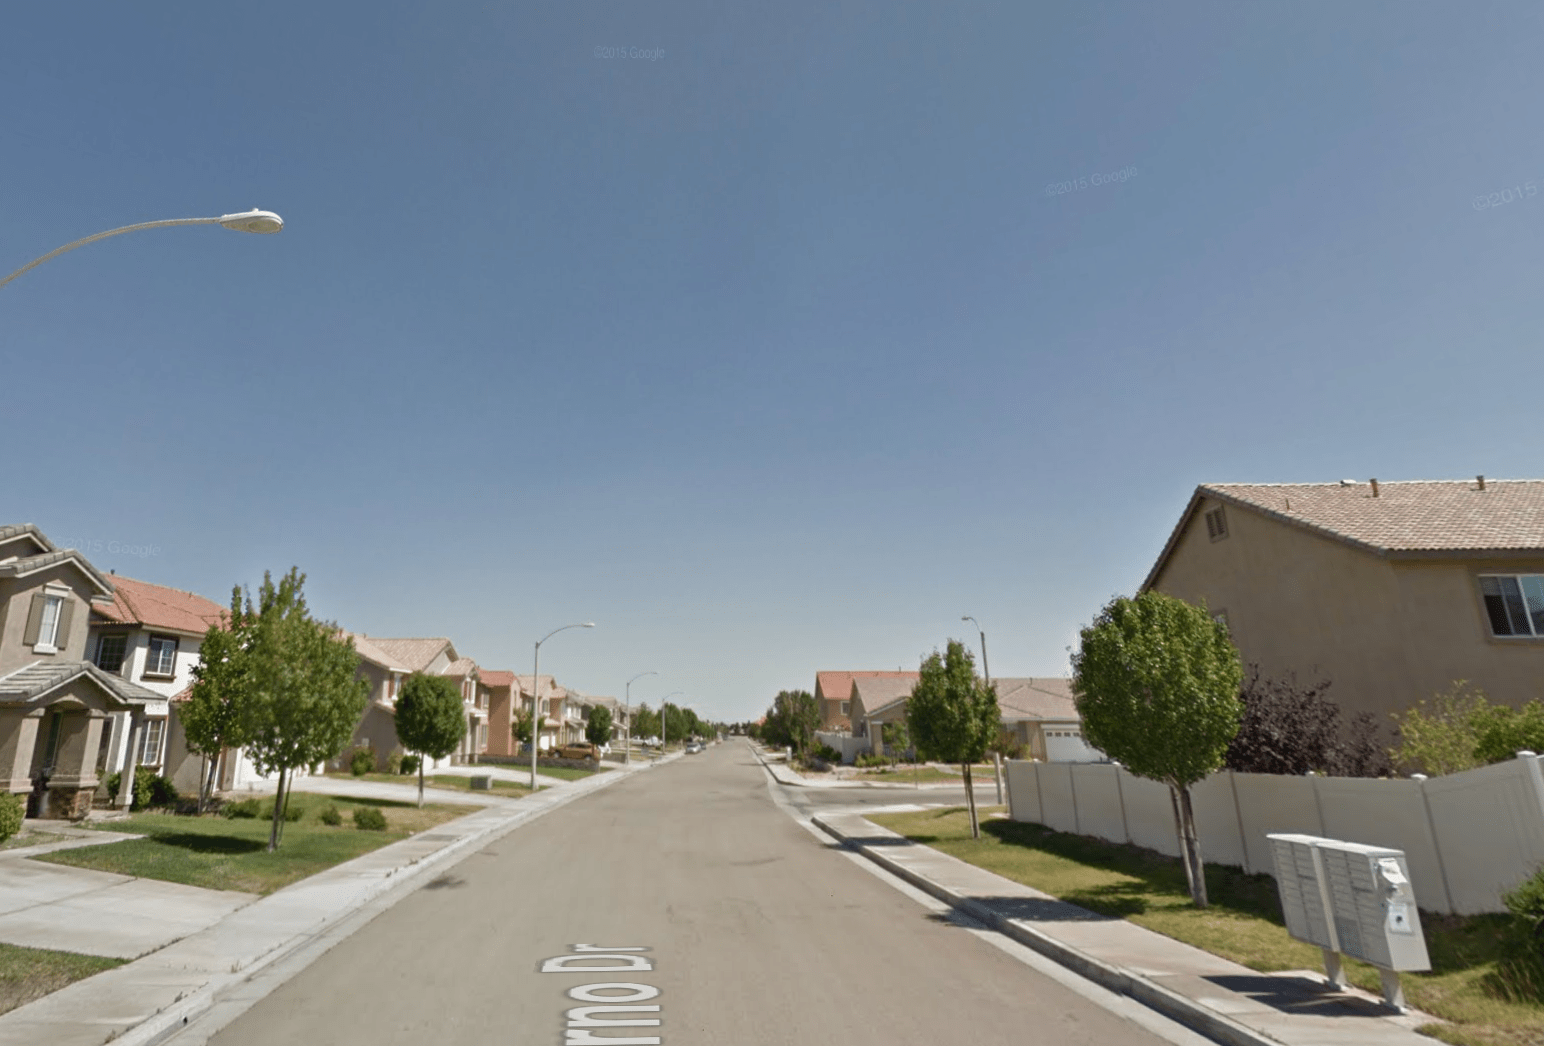 The 37000 block of Siderno Drive in Palmdale, Calif. appears in this image from Google Maps.